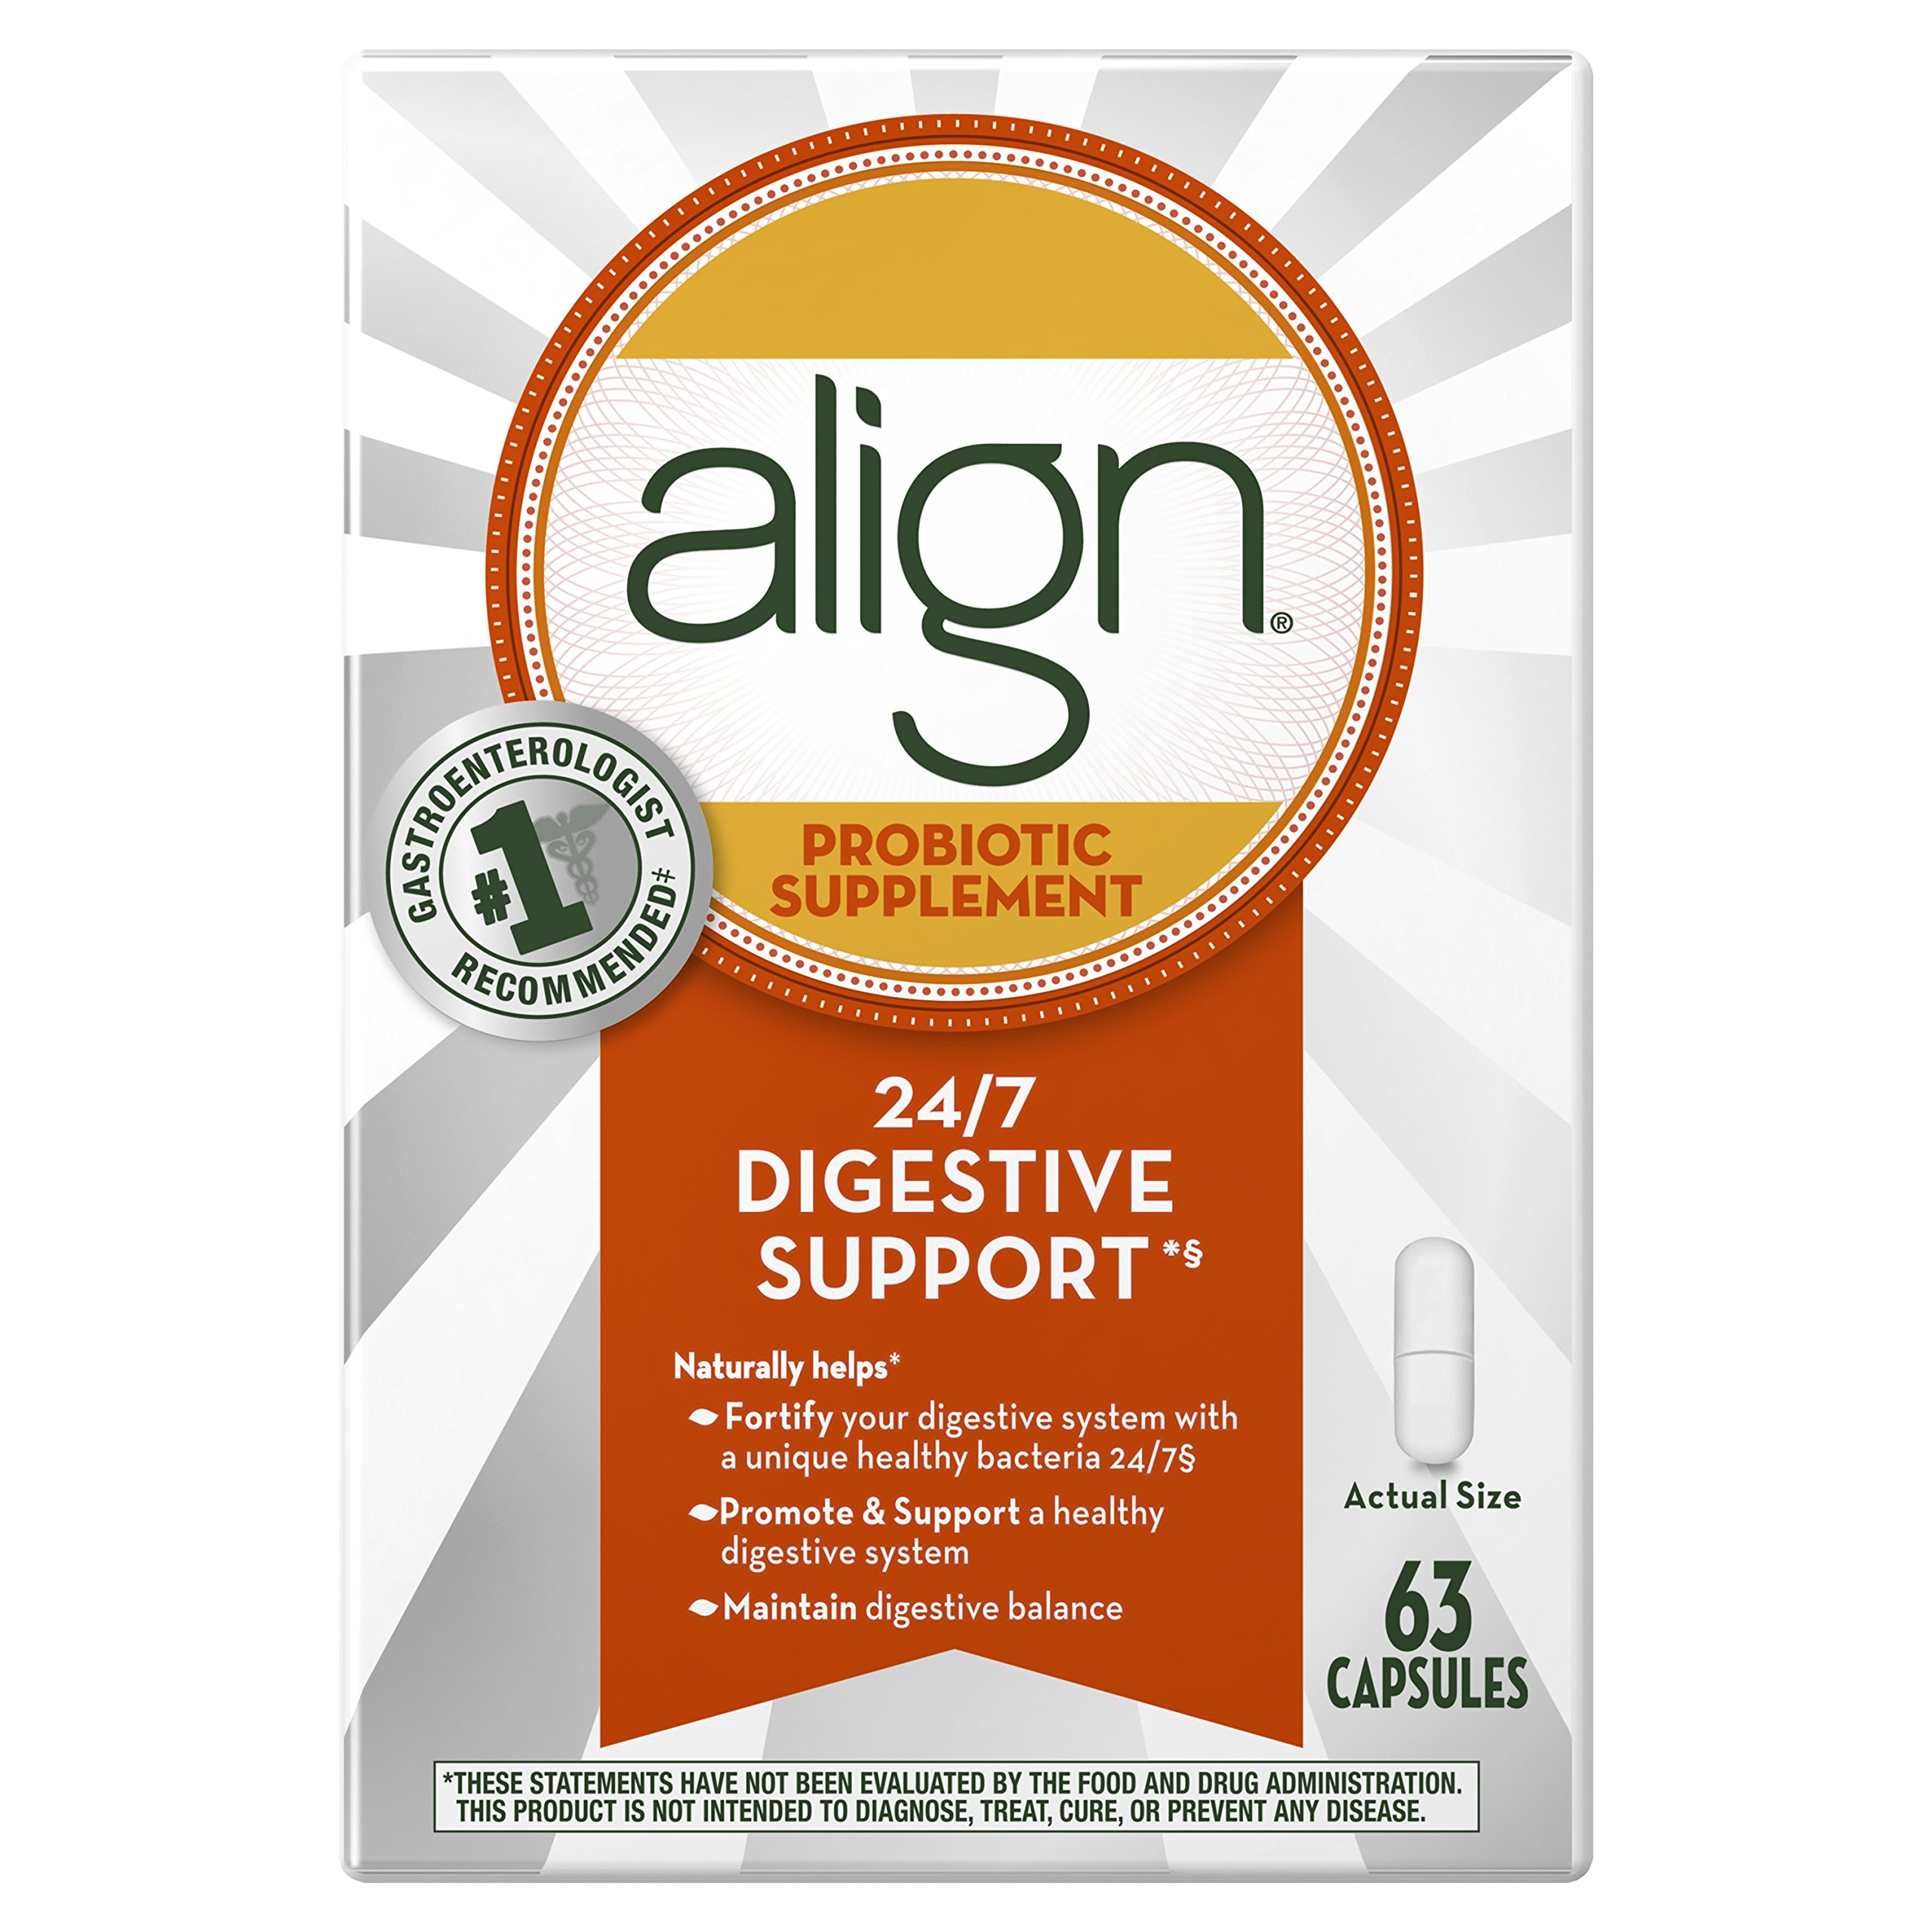 Align Probiotic Supplement Capsule 63 count (Packaging May Vary)